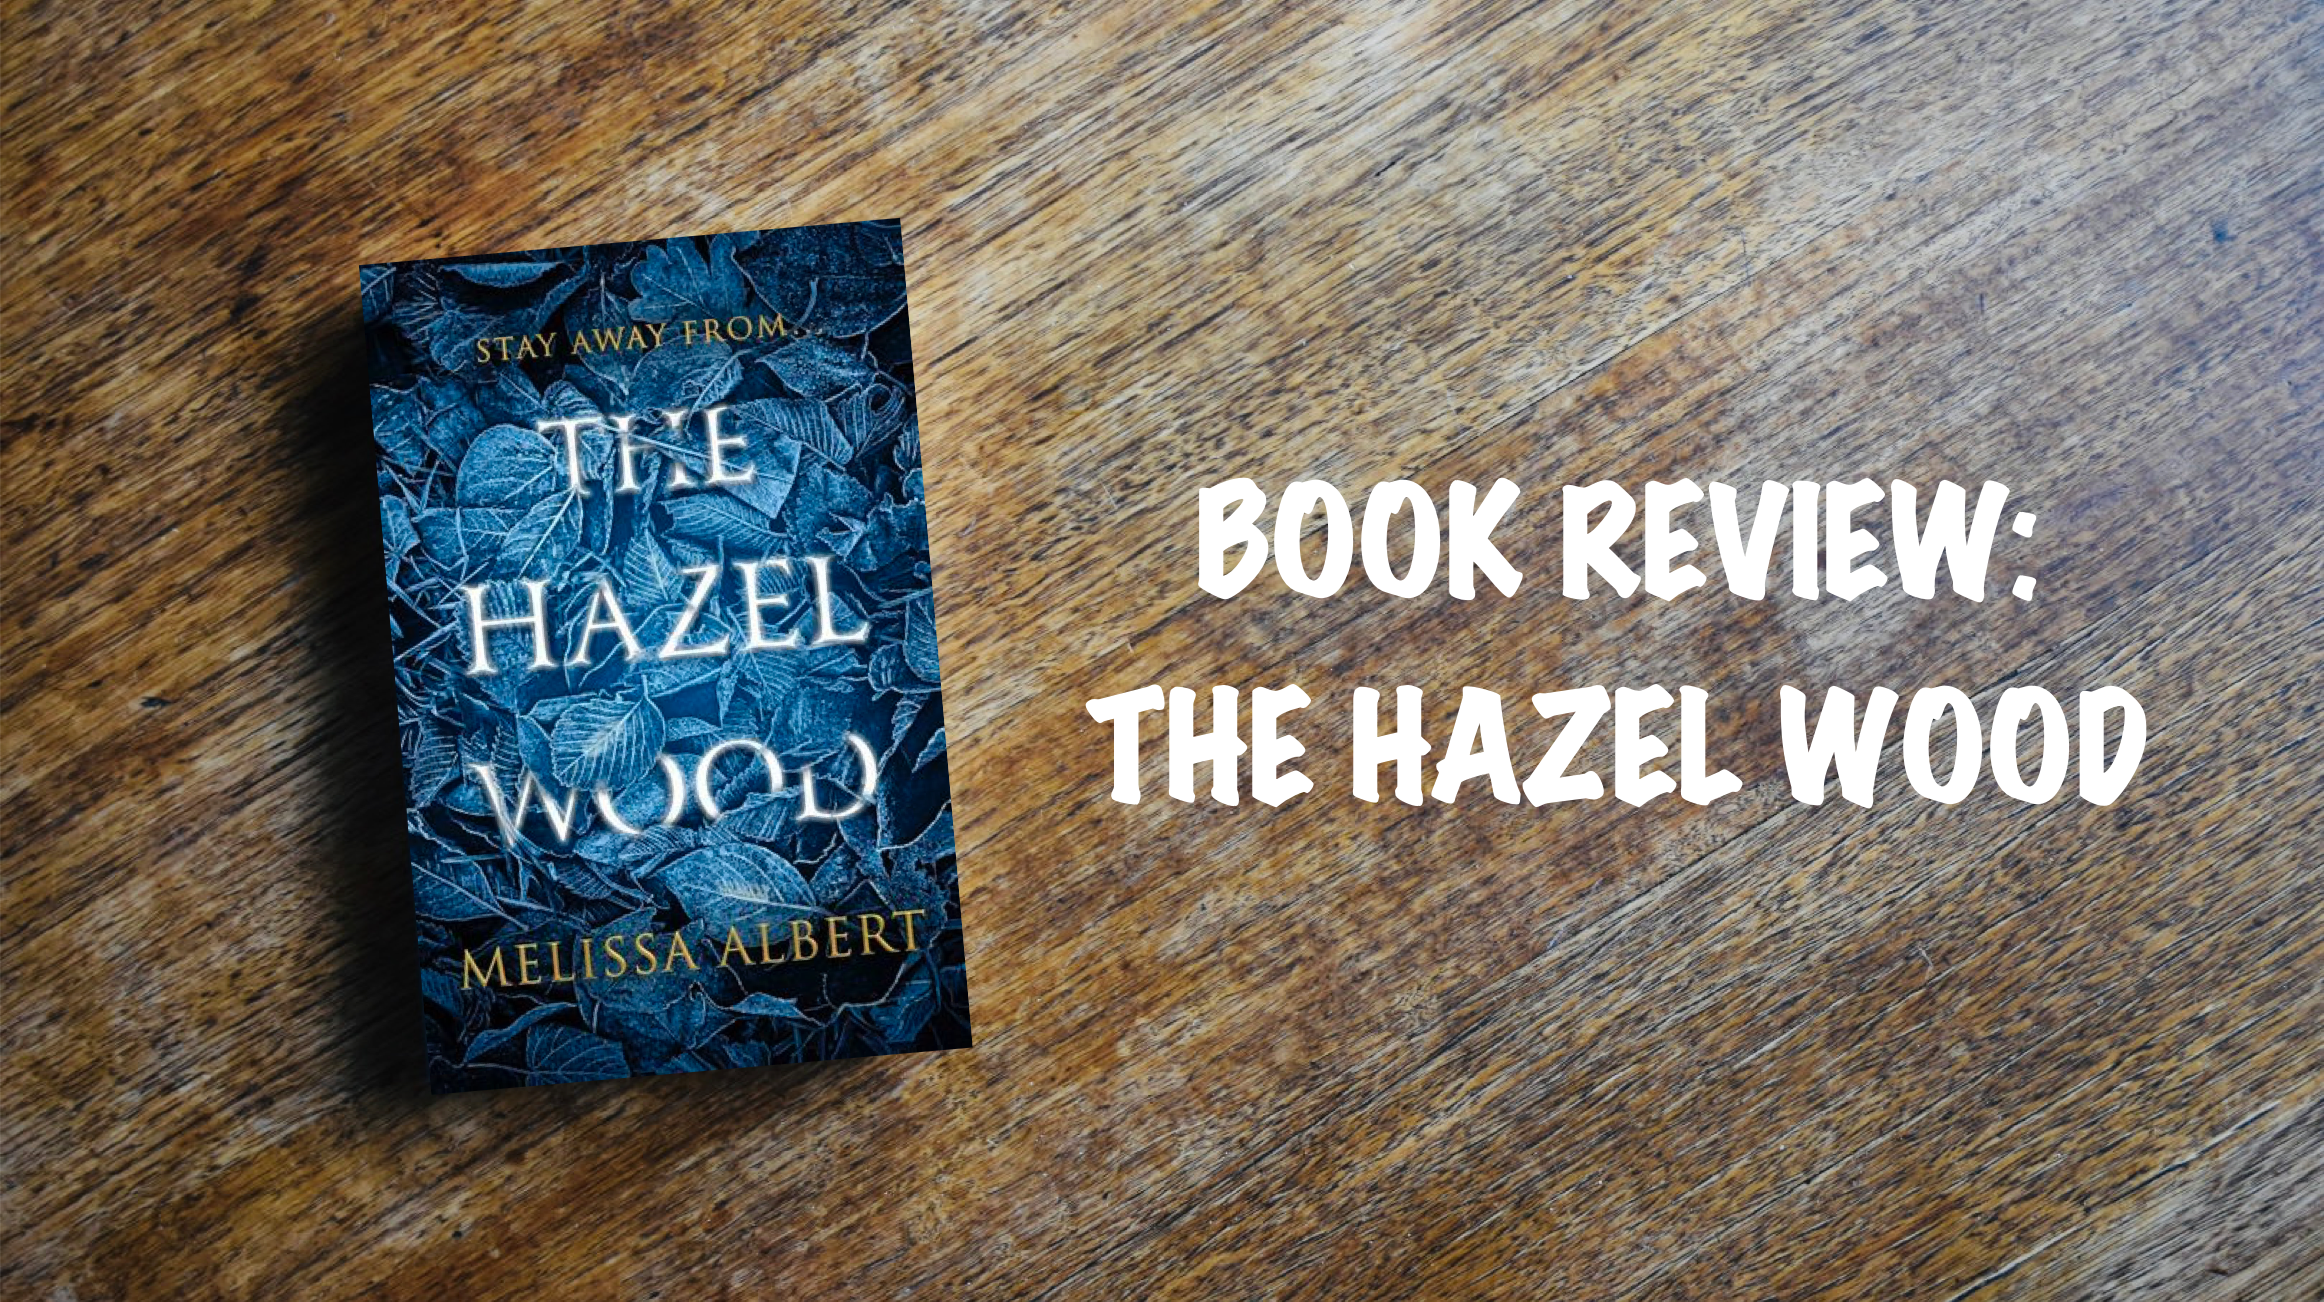 Book review banner: The Hazel Wood